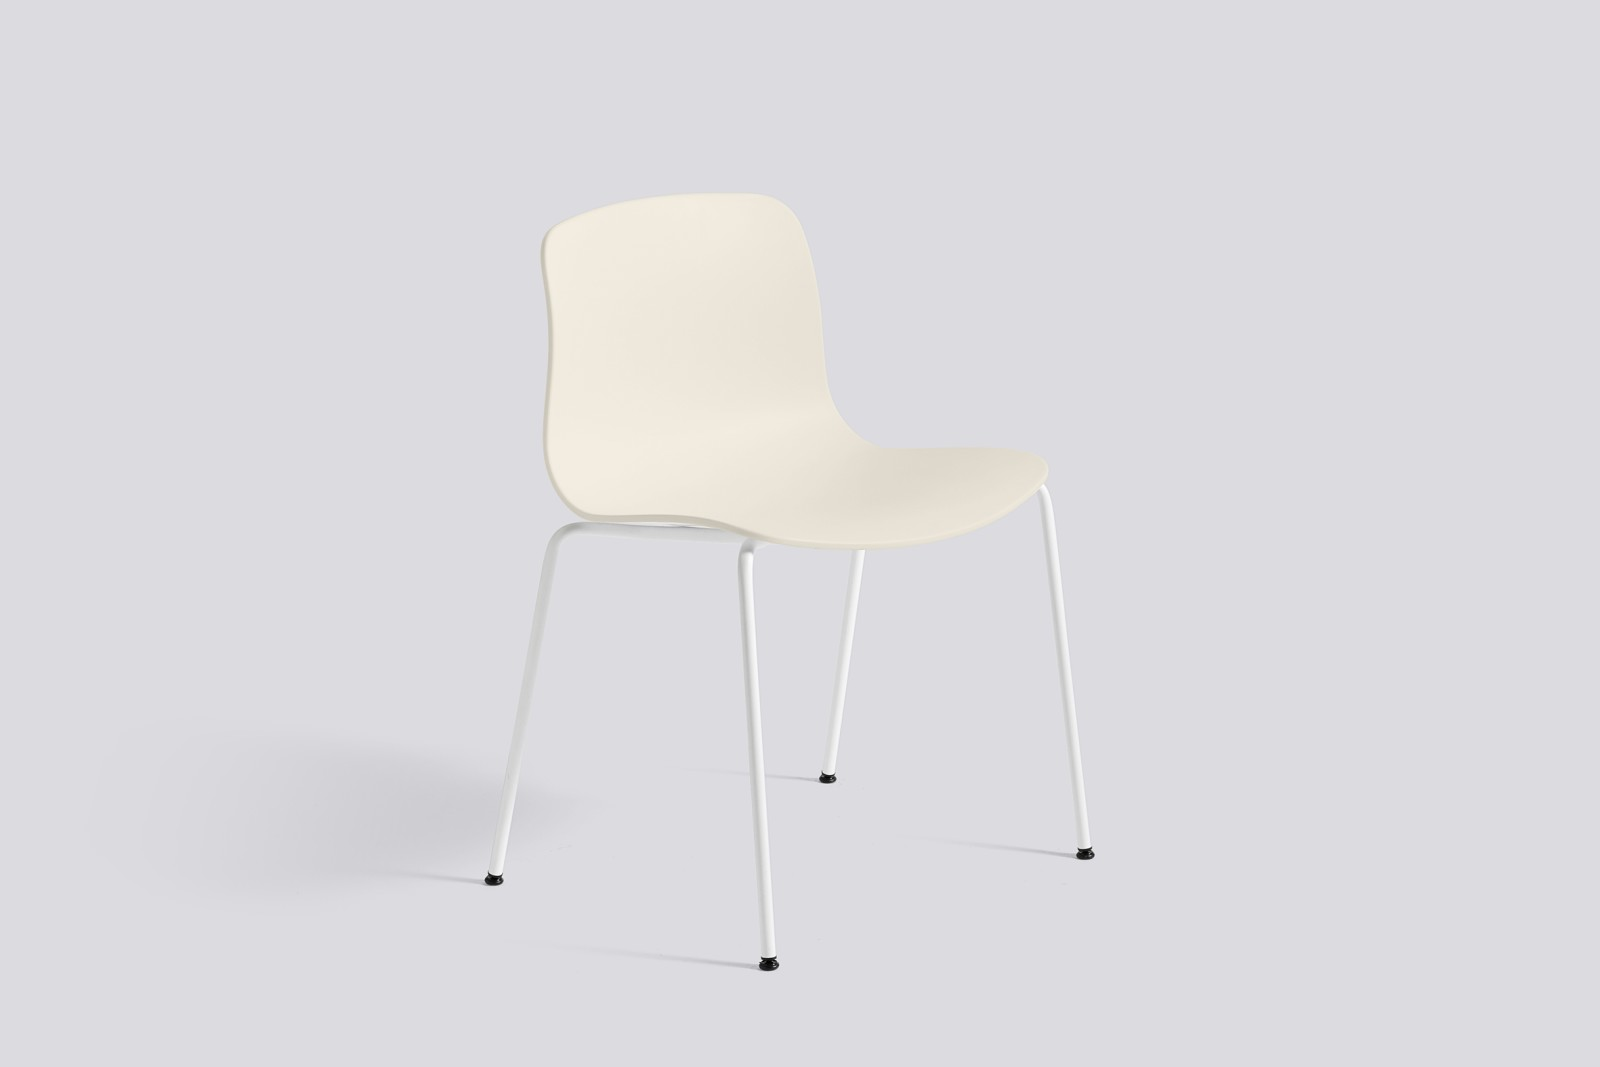 About A Chair AAC16 Cream white, White Powder Coated Steel